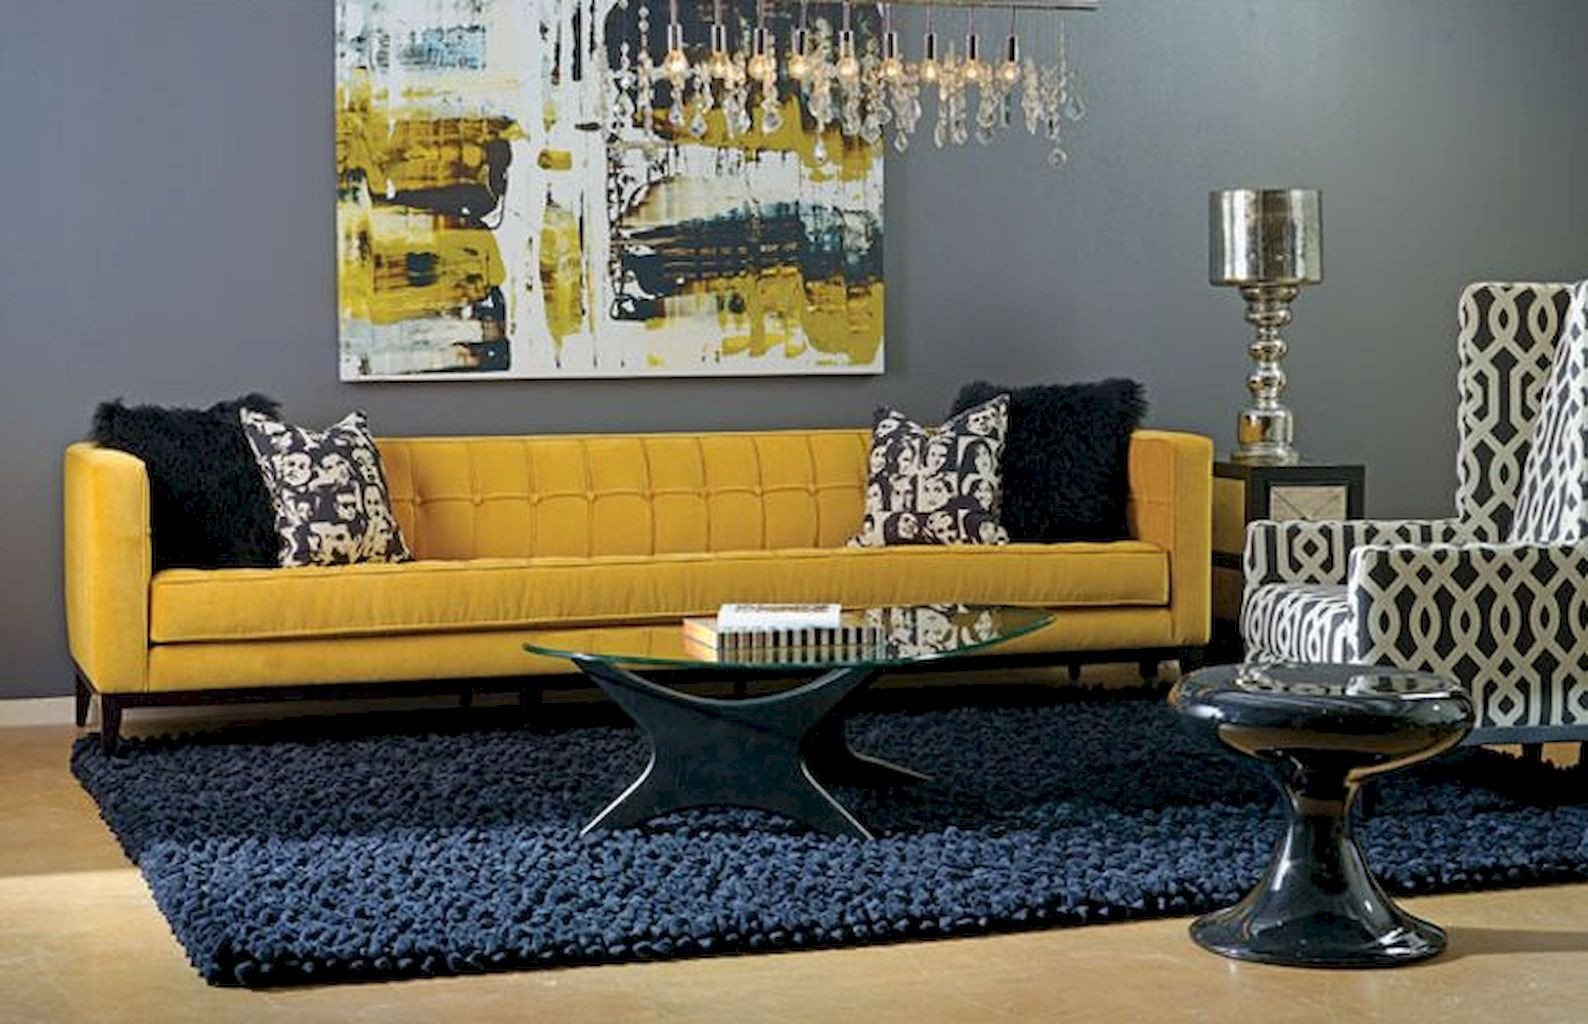 Navy Blue and Yellow Bedroom Inspirational 65 Beautiful Yellow sofa for Living Room Decor Ideas